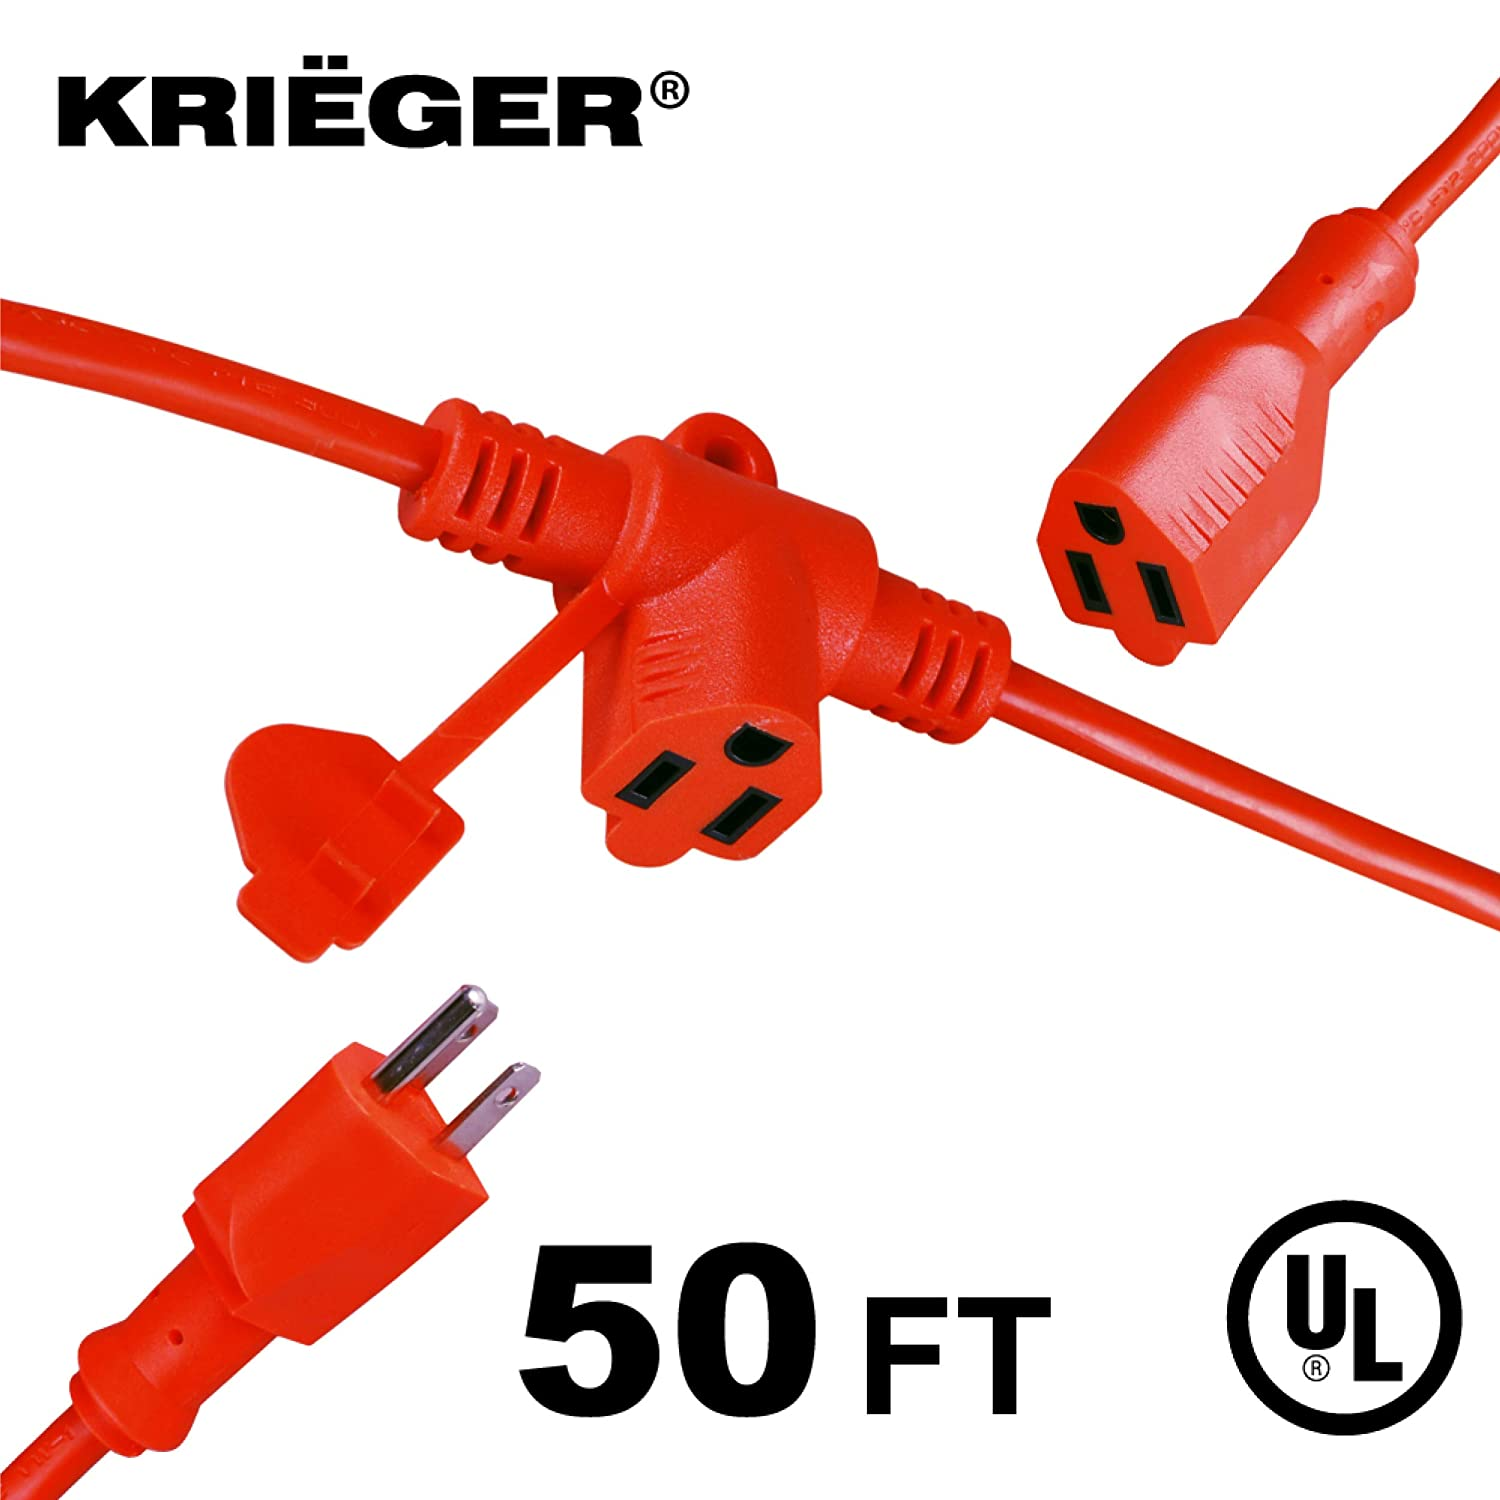 KRIËGER Heavy Duty Multi-Outlet Outdoor Extension Cord with Evenly-Spaced Outlets- 3 AC Power Plugs In 1 Extension Cord - Ideal for Indoor and Outdoor Lights and Appliances- 50 Ft Long